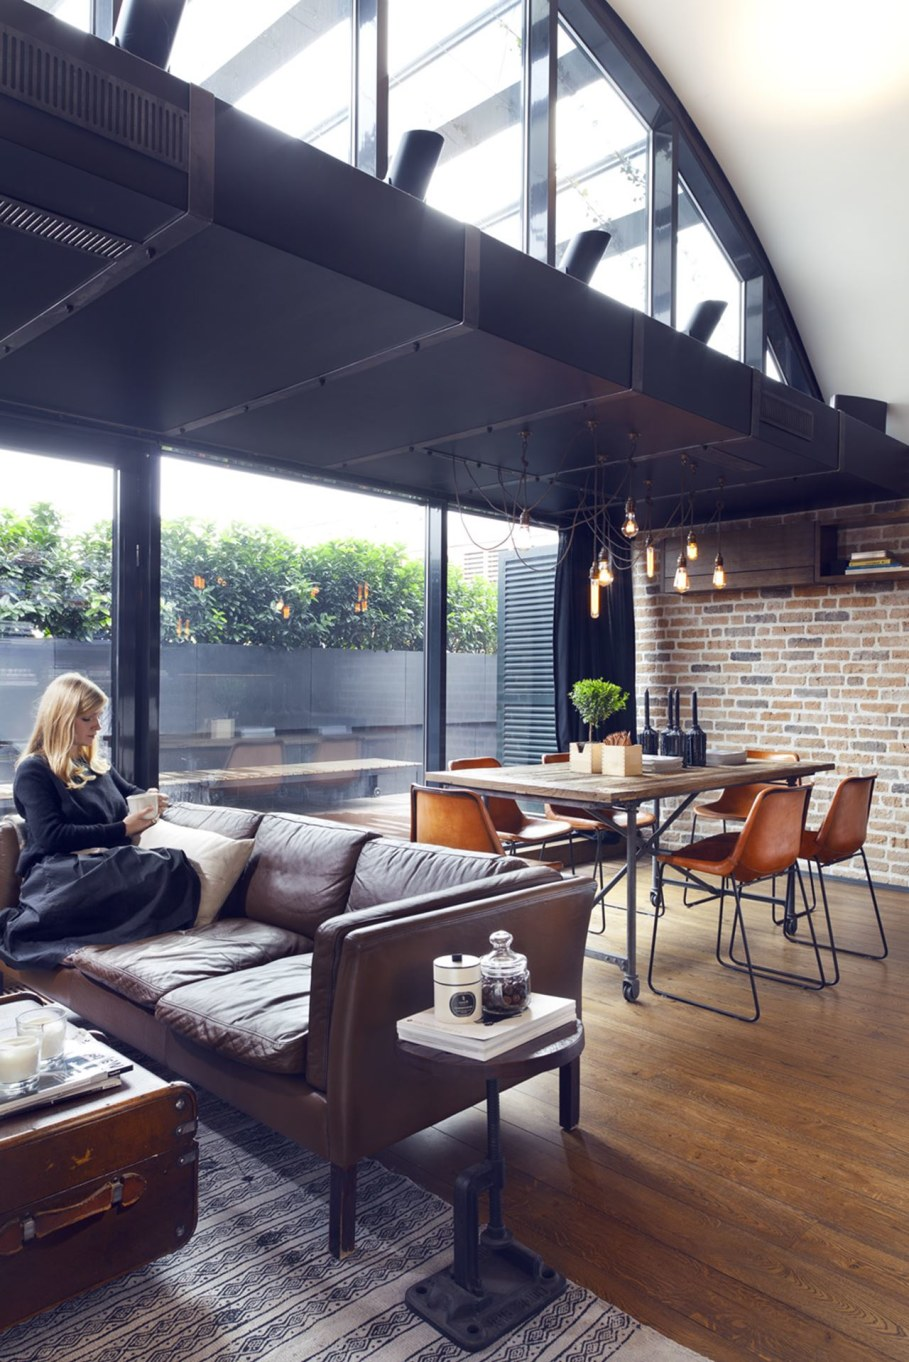 Attic Apartment - Dining place